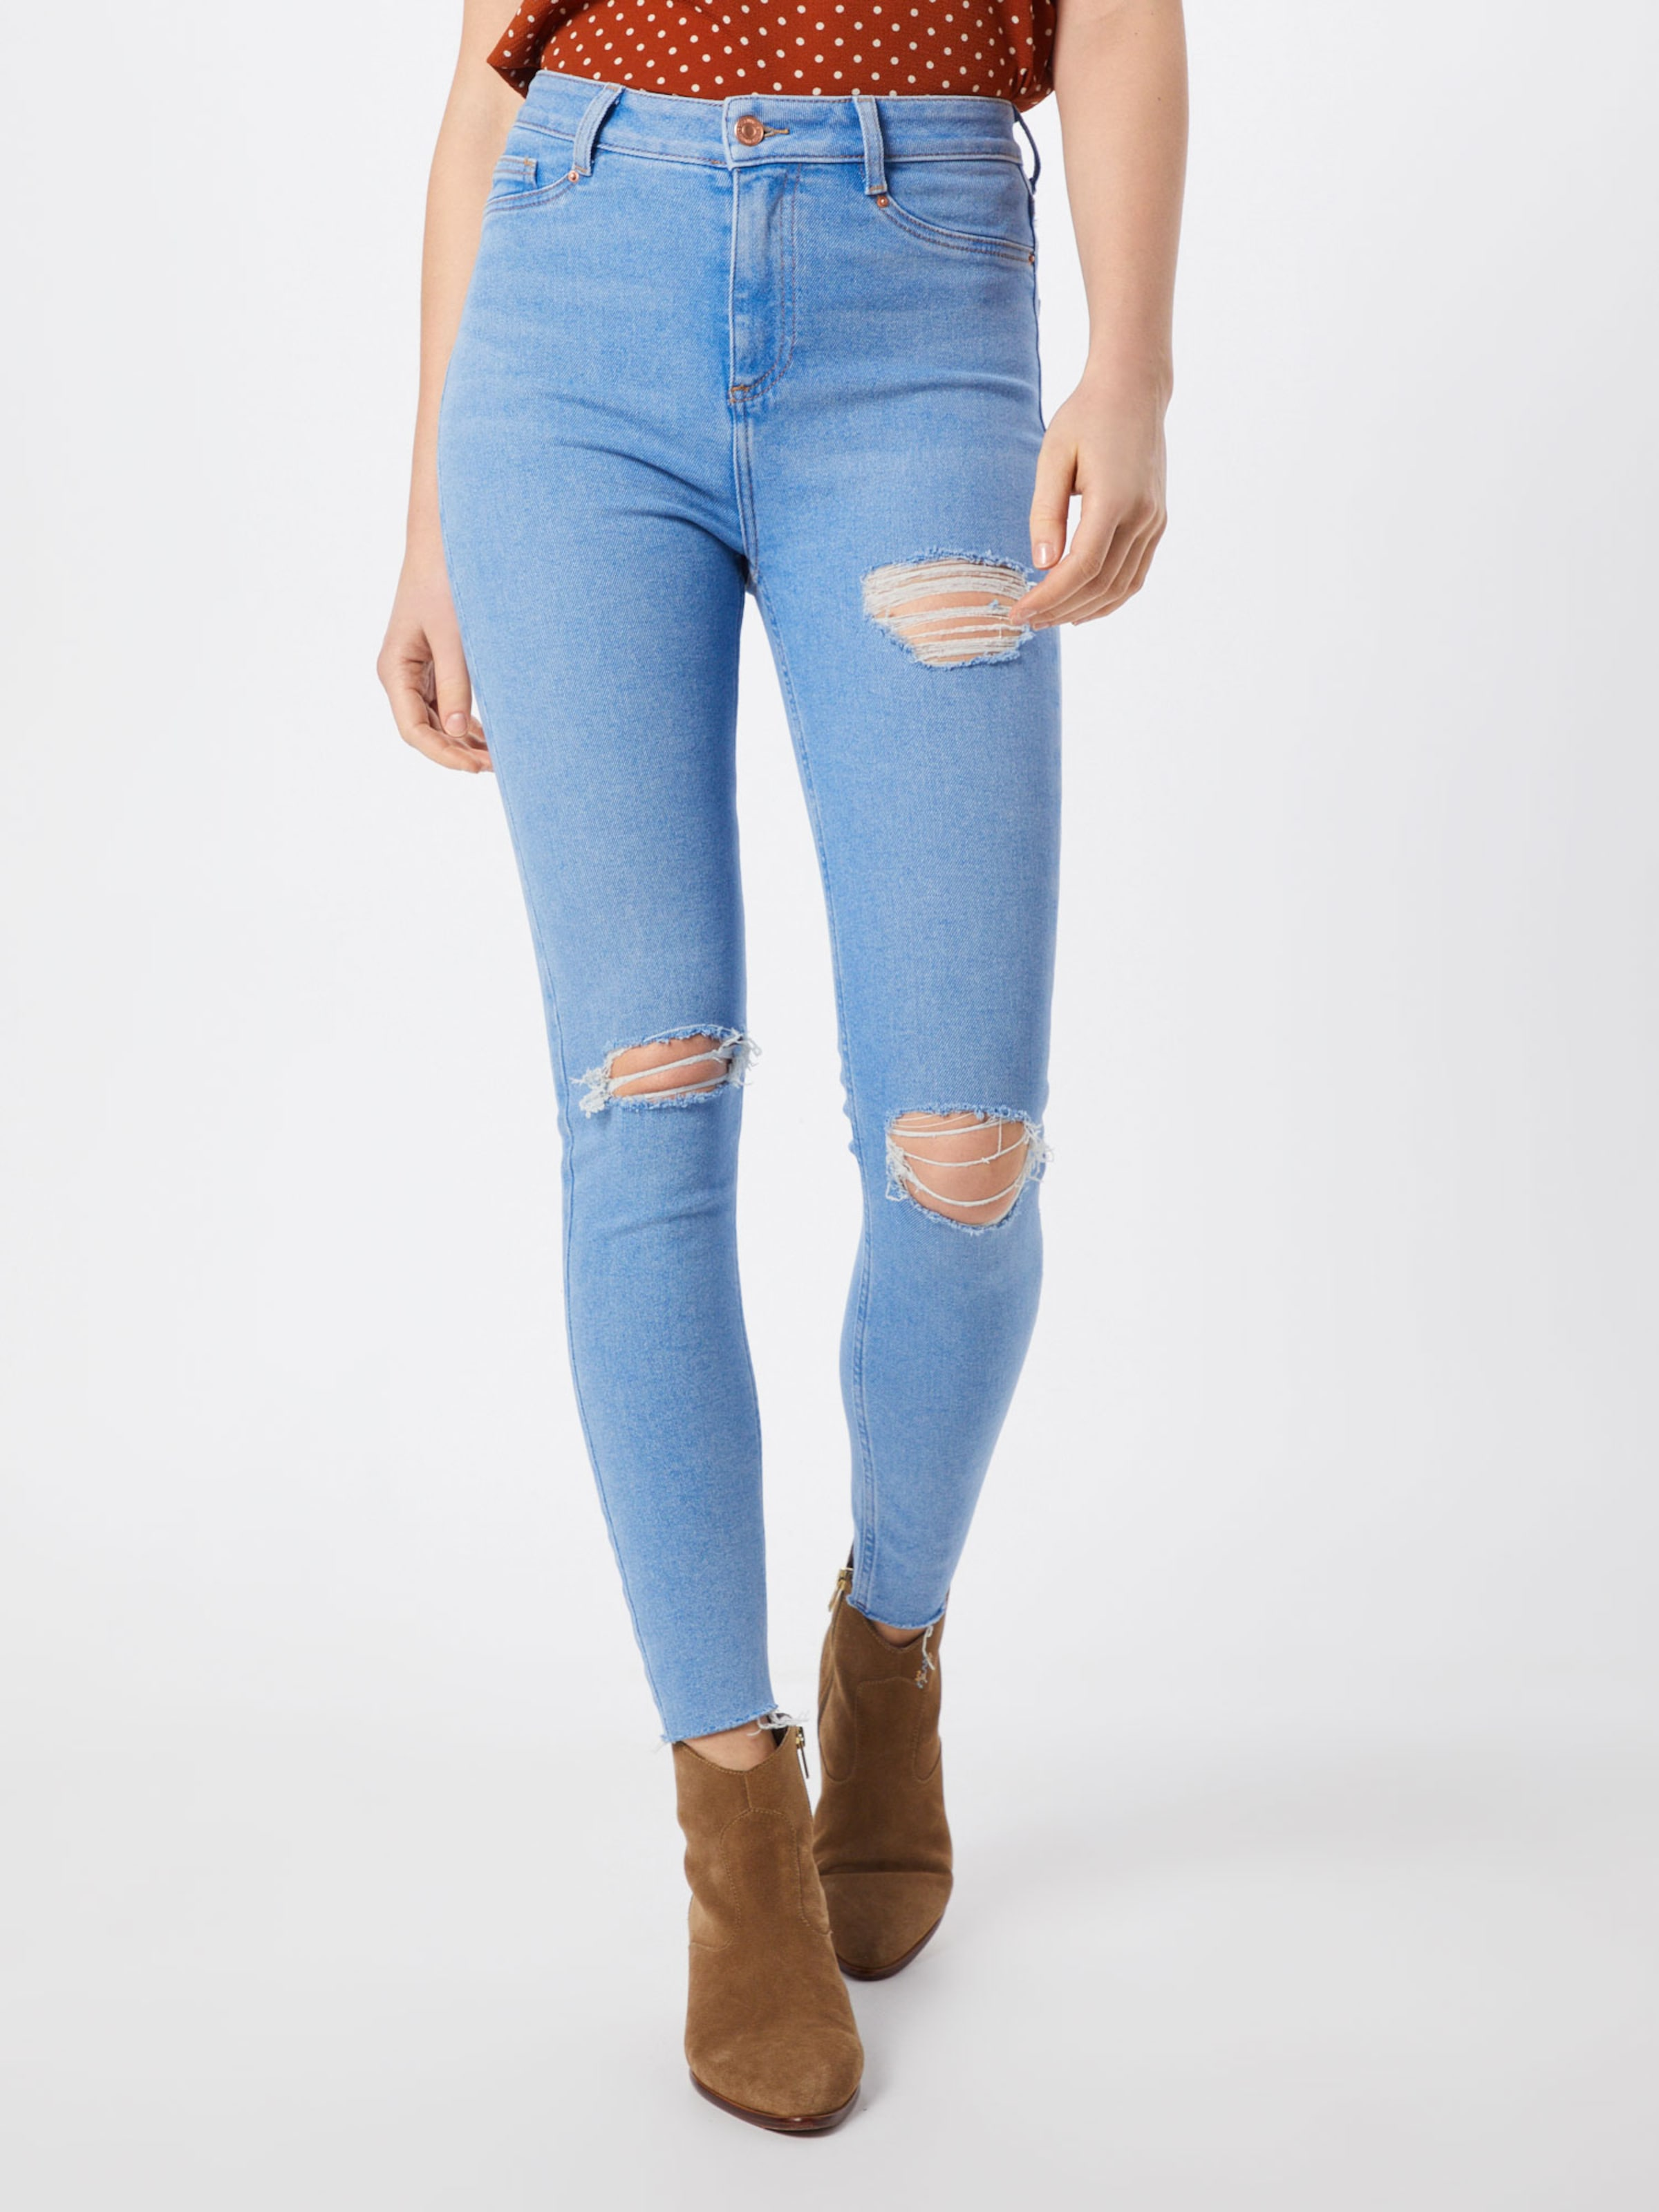 'rosie Denim Jeggings Thigh Blauw Bright New In Look Disco' Gap Rip EWI92DH